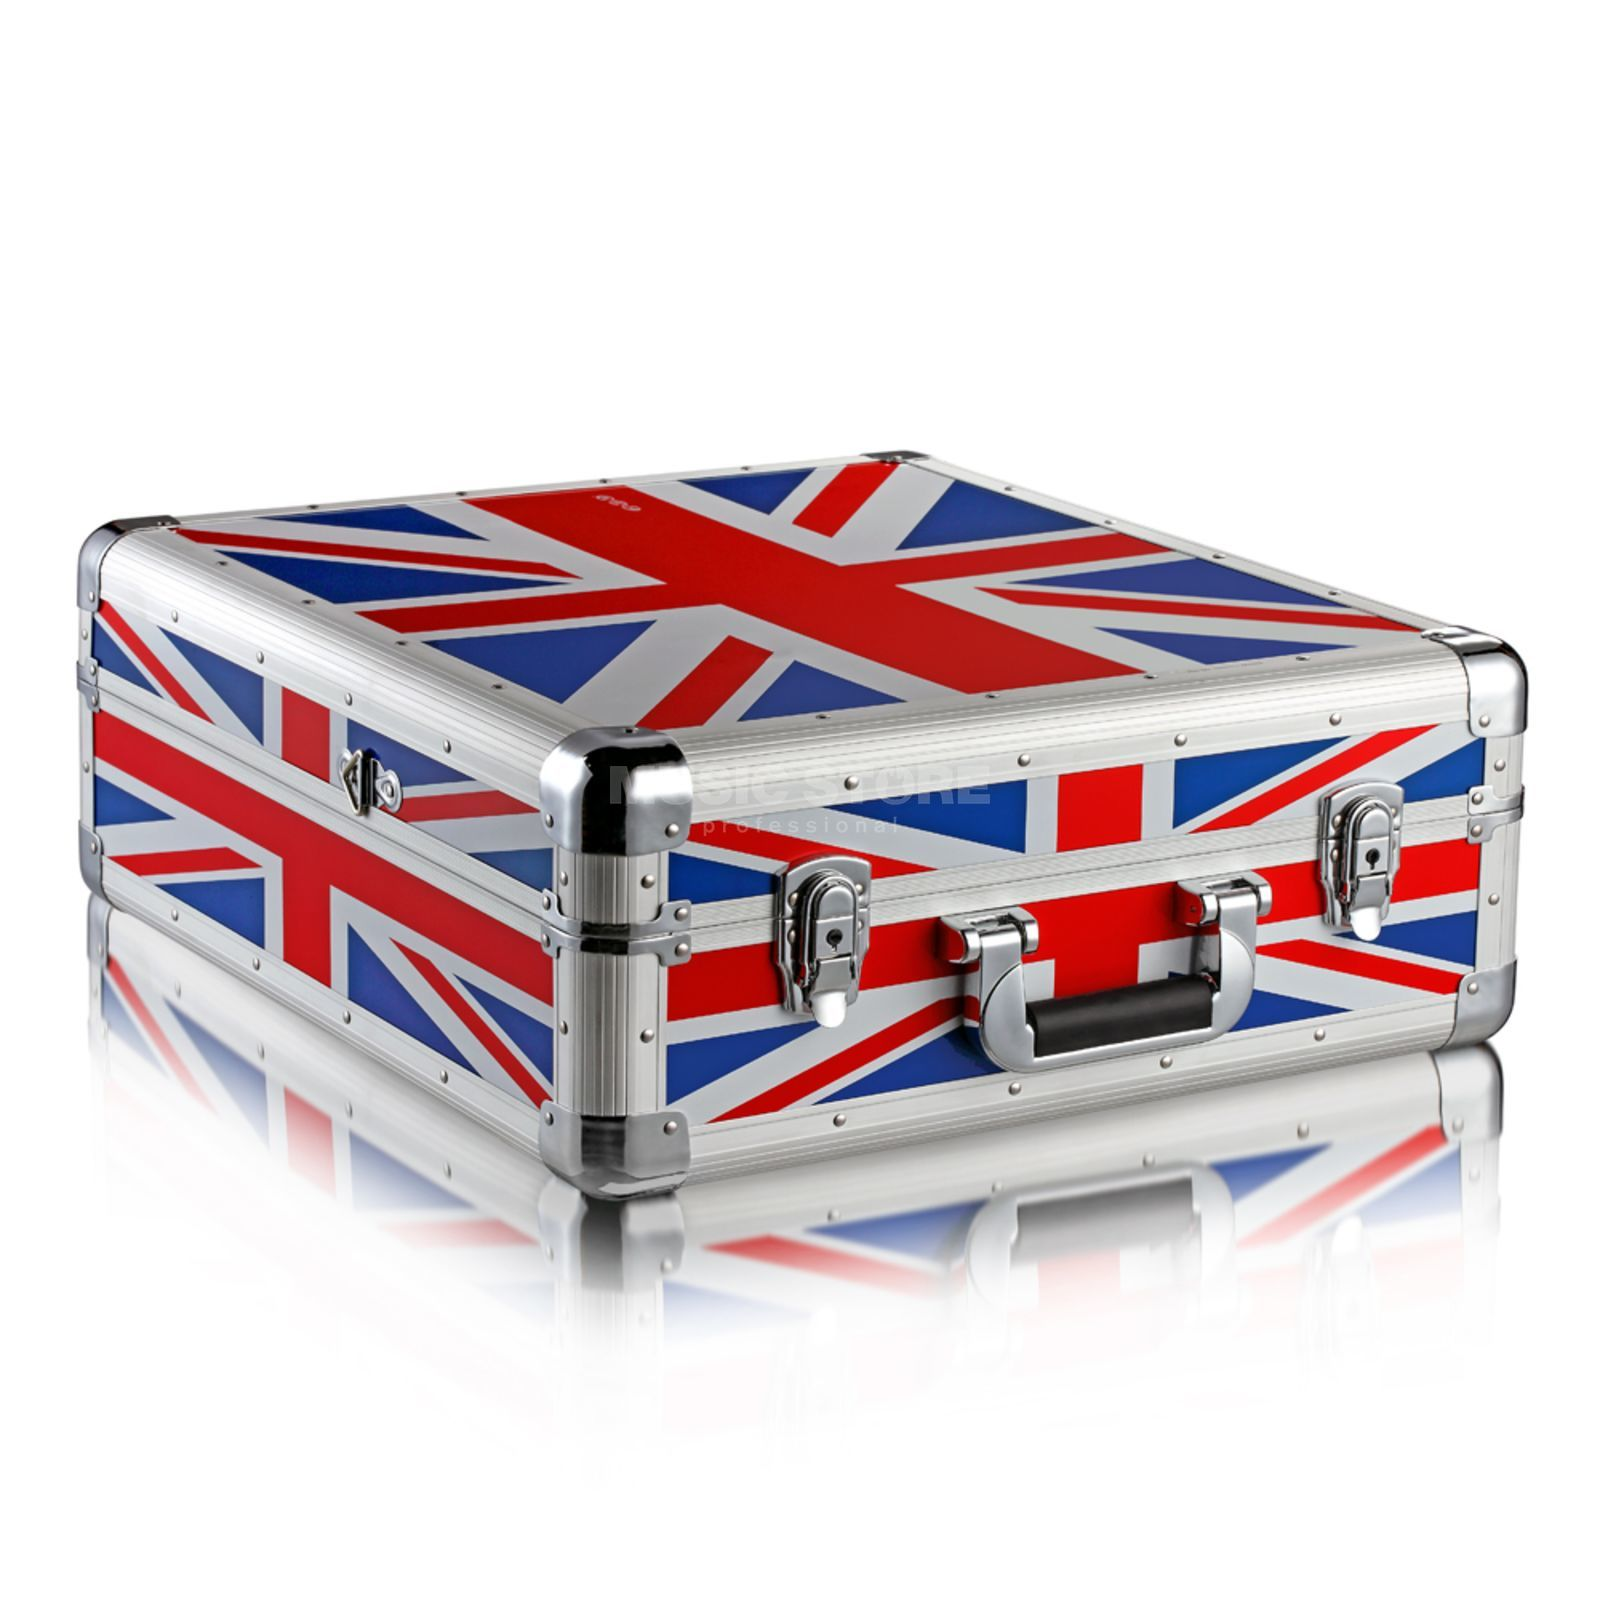 Zomo Case CDJ-13 UK Flag Fligthcase voor 13 inch apparatuur Productafbeelding